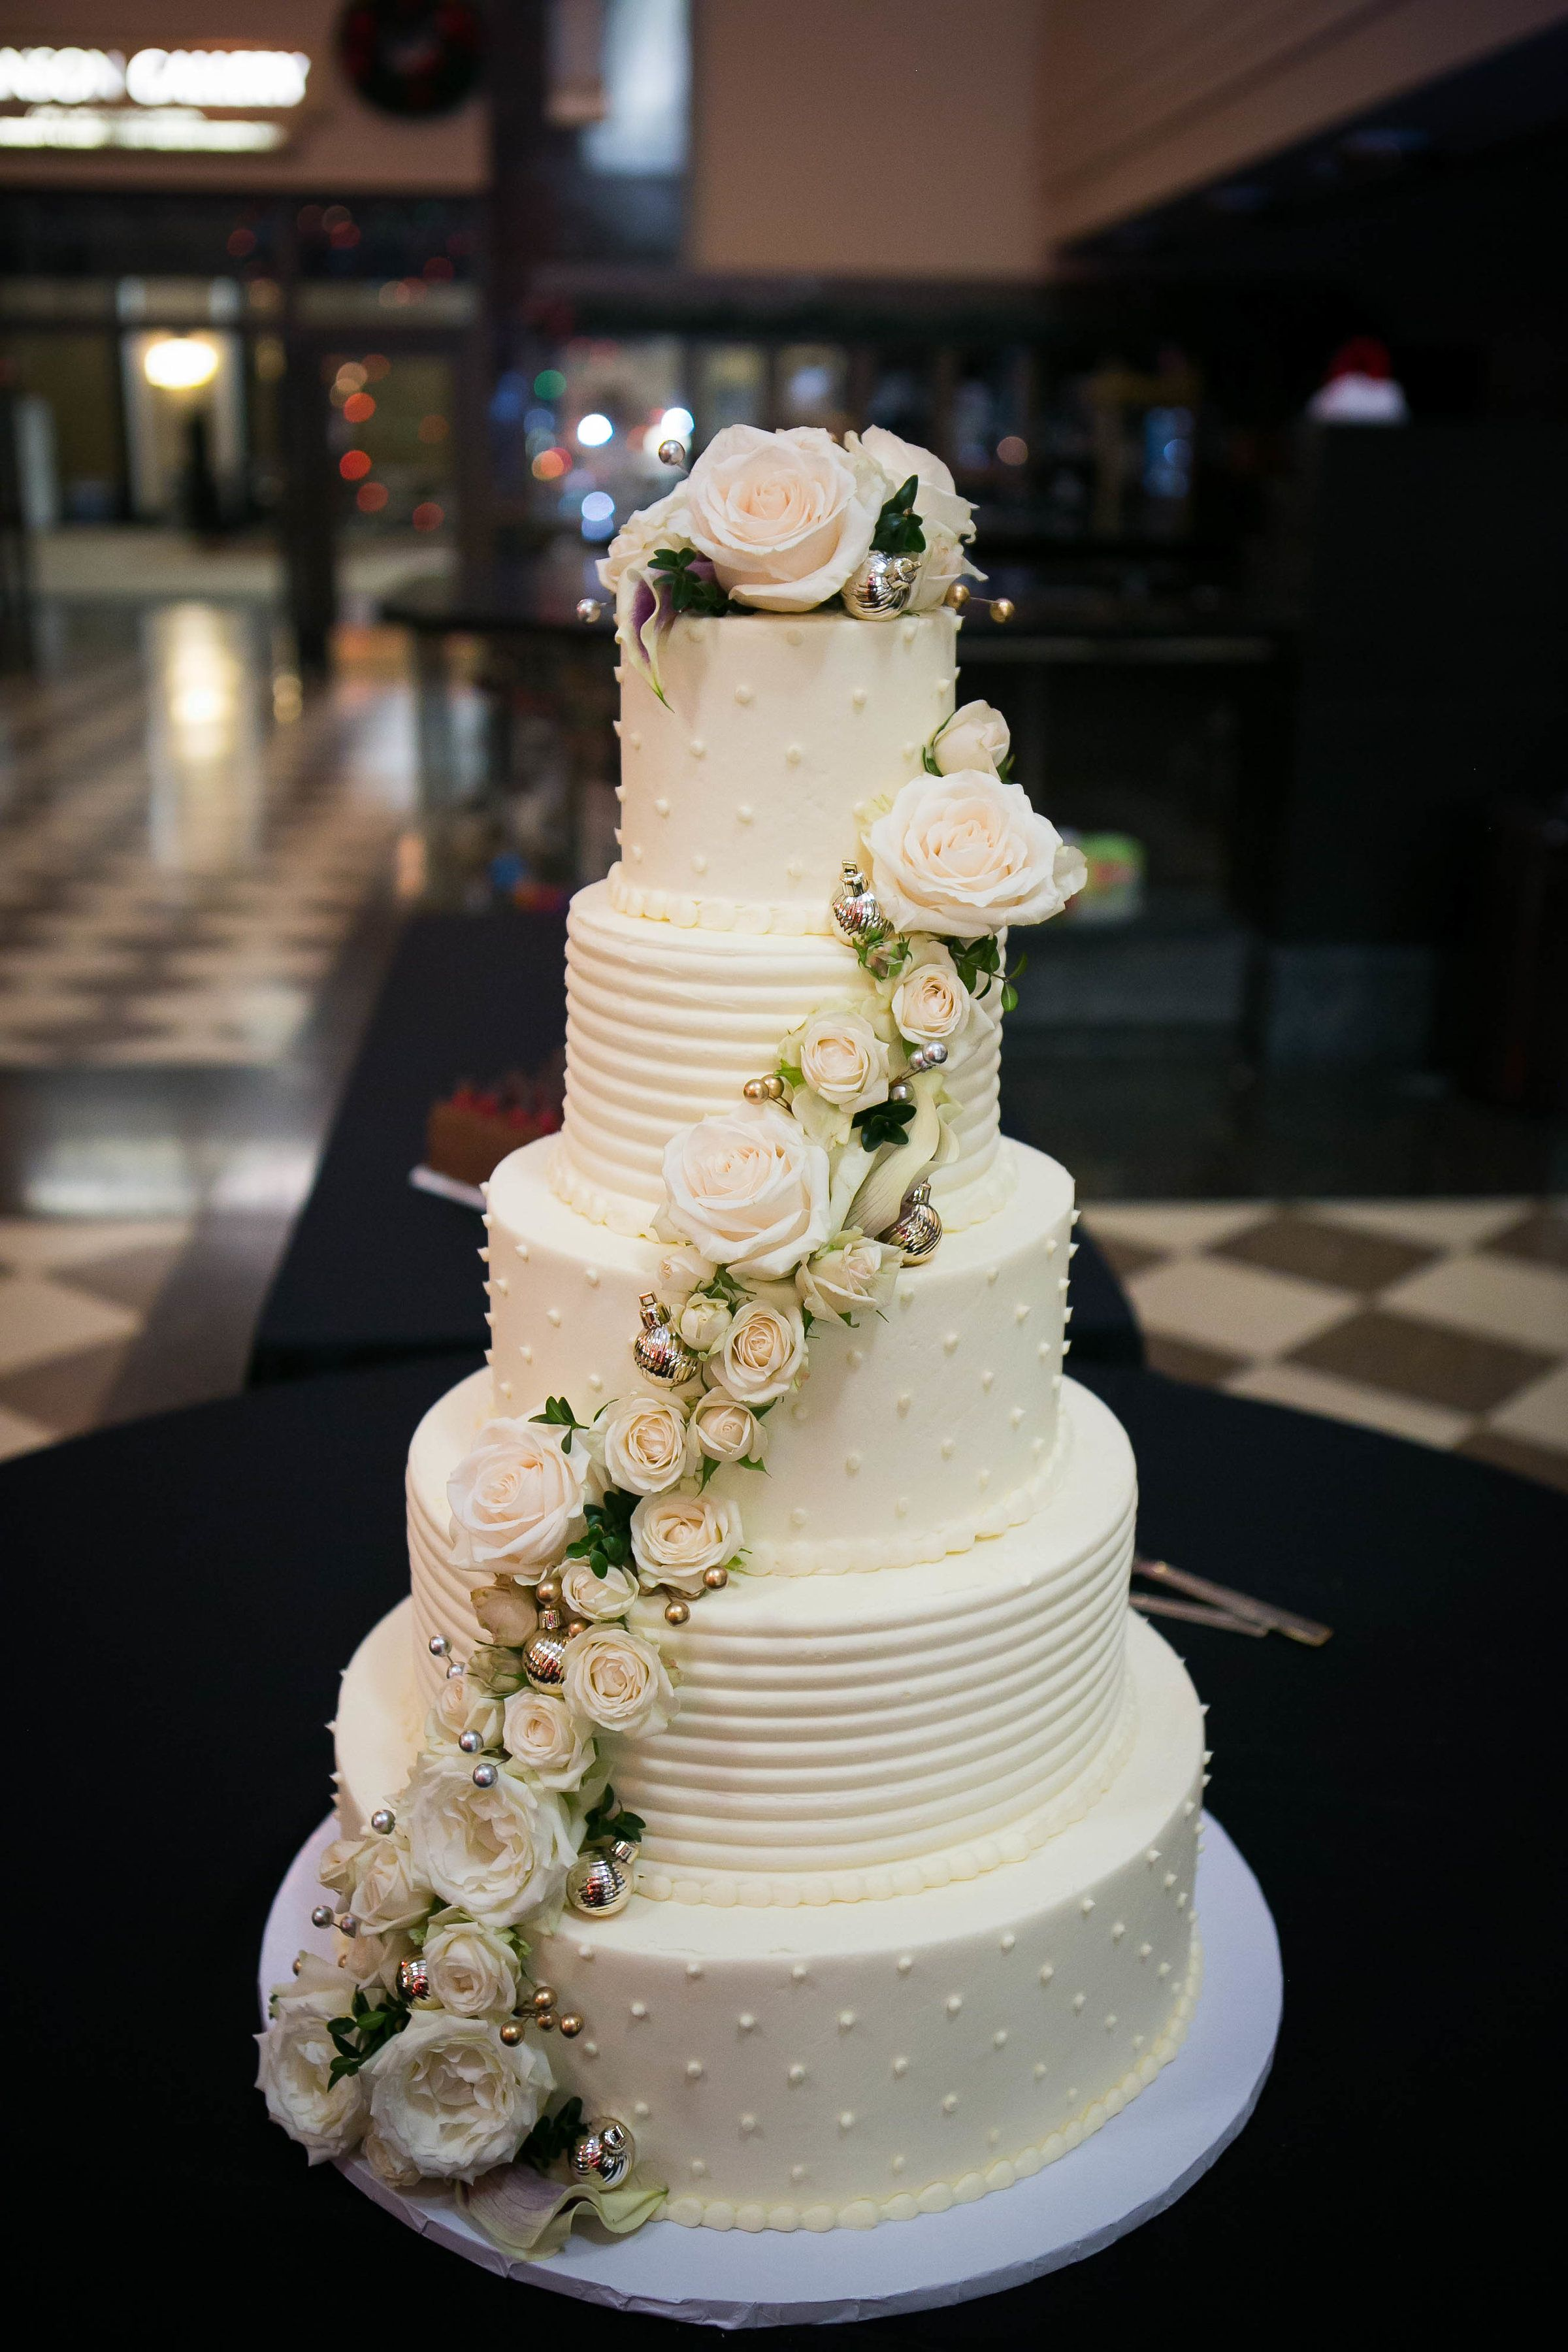 Five Tier Wedding Cake with Roses Omaha Wedding The Durham Museum - click to view full gallery